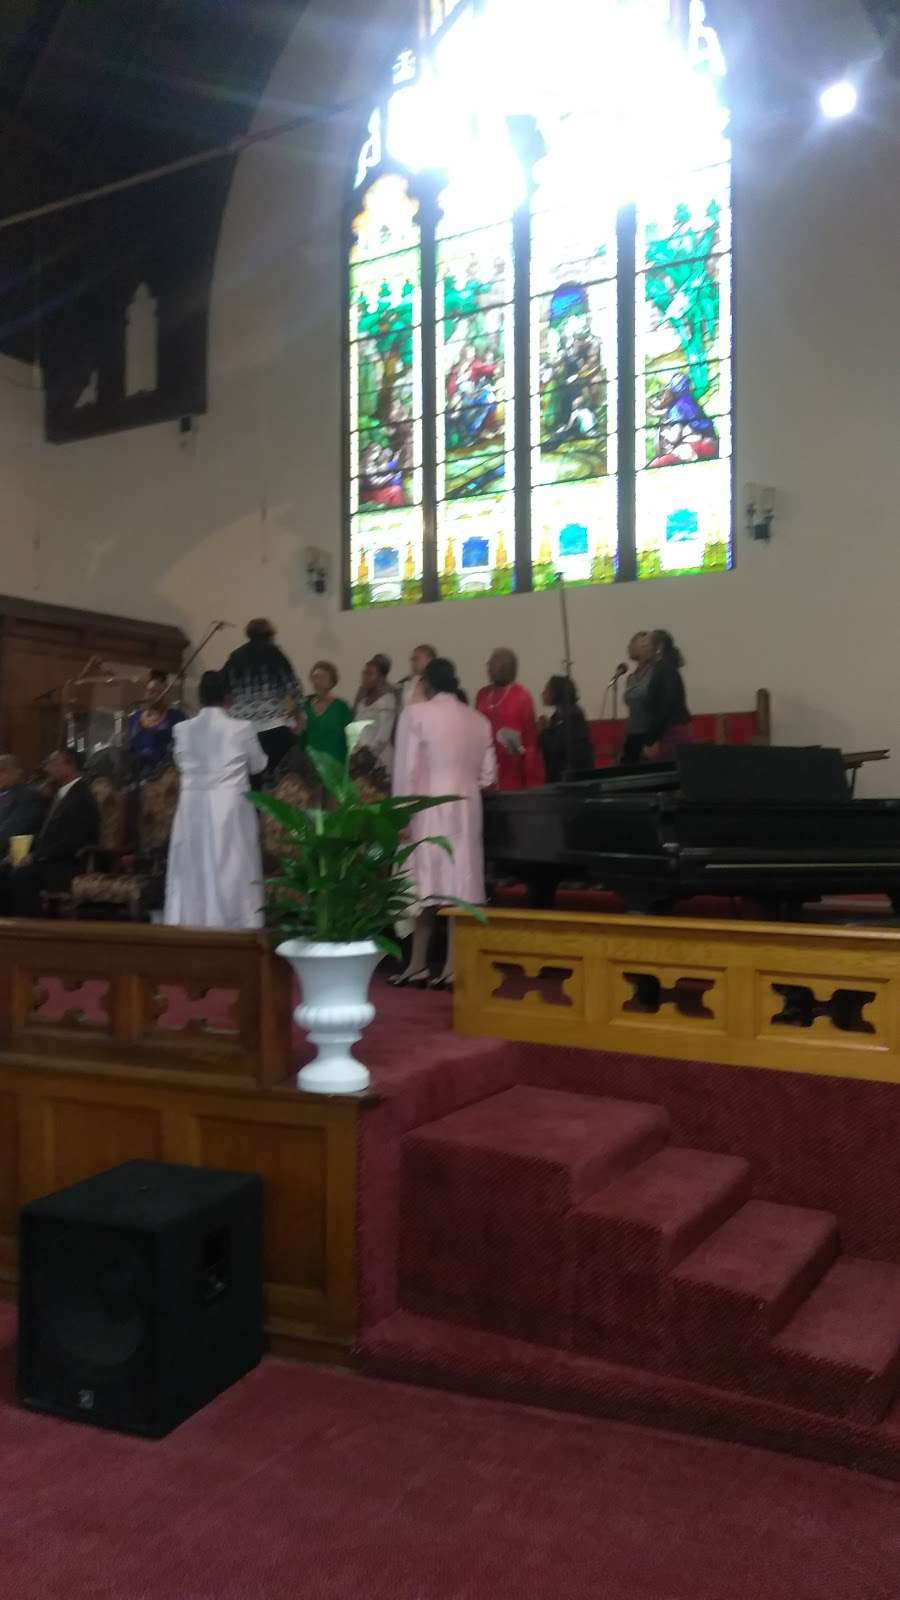 Greater Page Temple Church of God in Christ - church  | Photo 2 of 2 | Address: Los Angeles, CA 90018, USA | Phone: (323) 870-5270